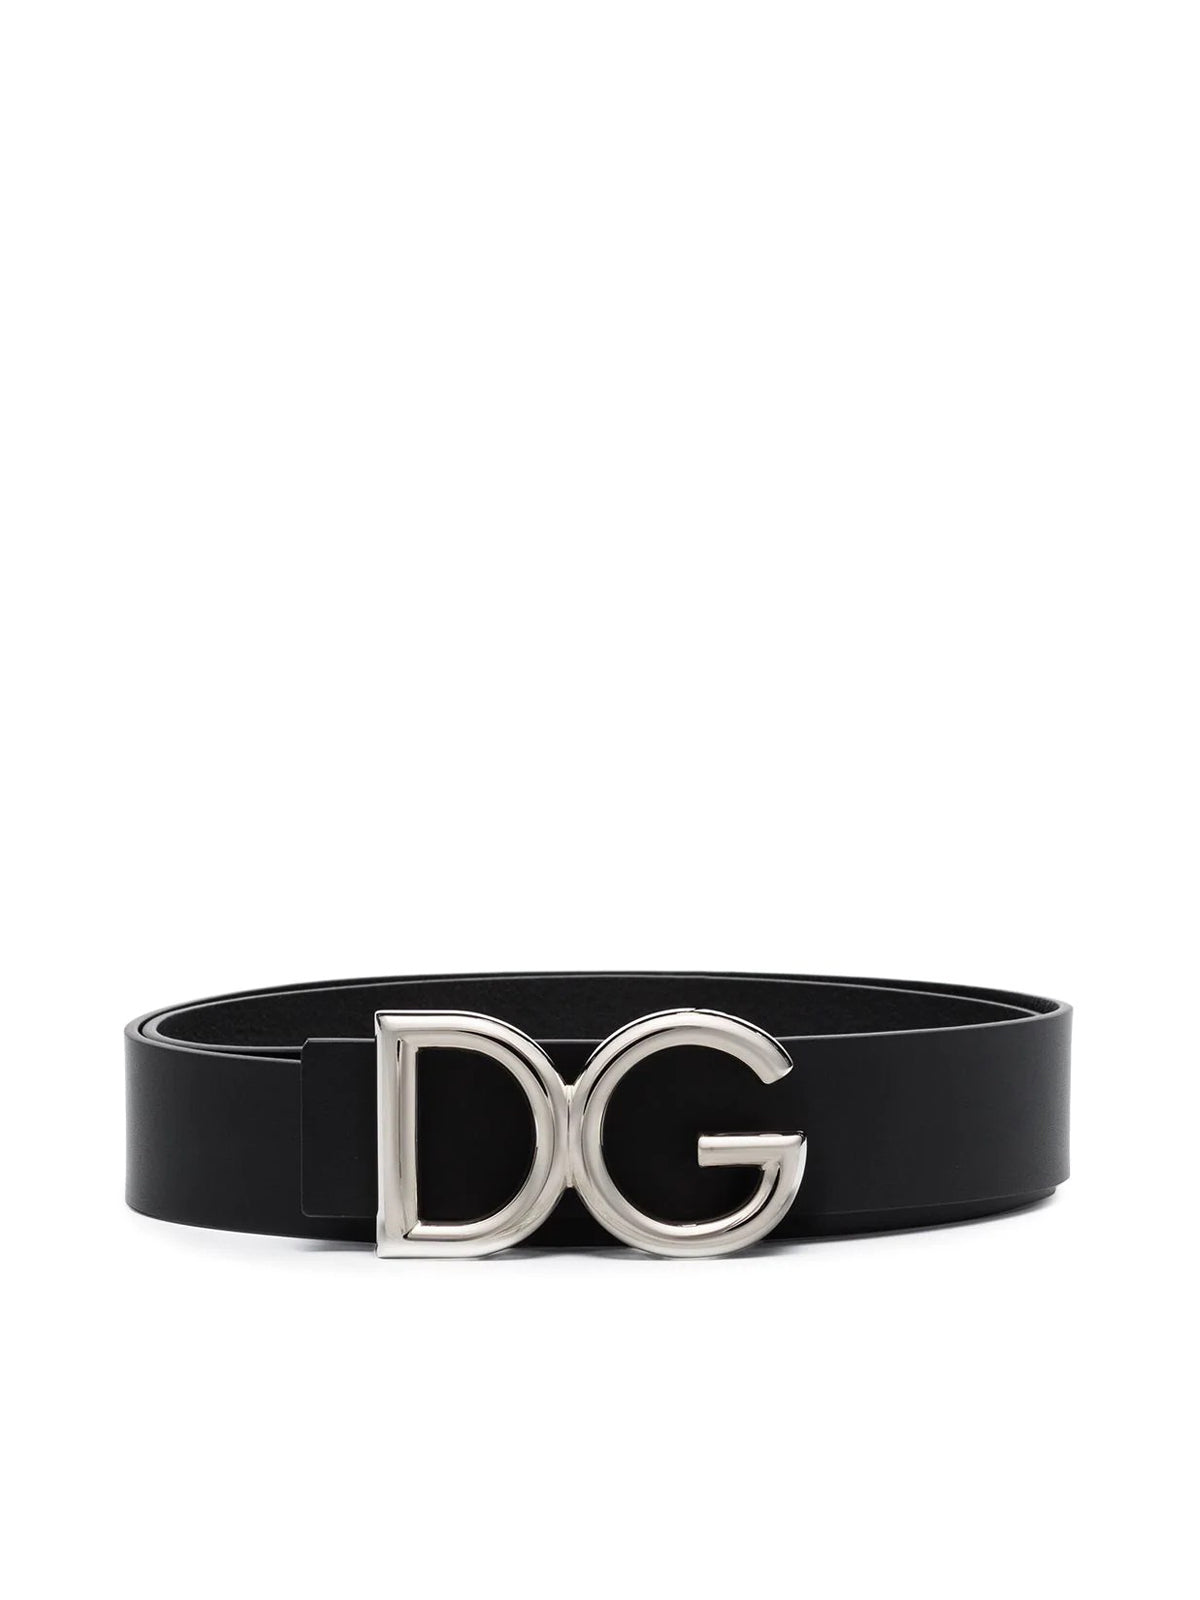 DG logo-plaque belt